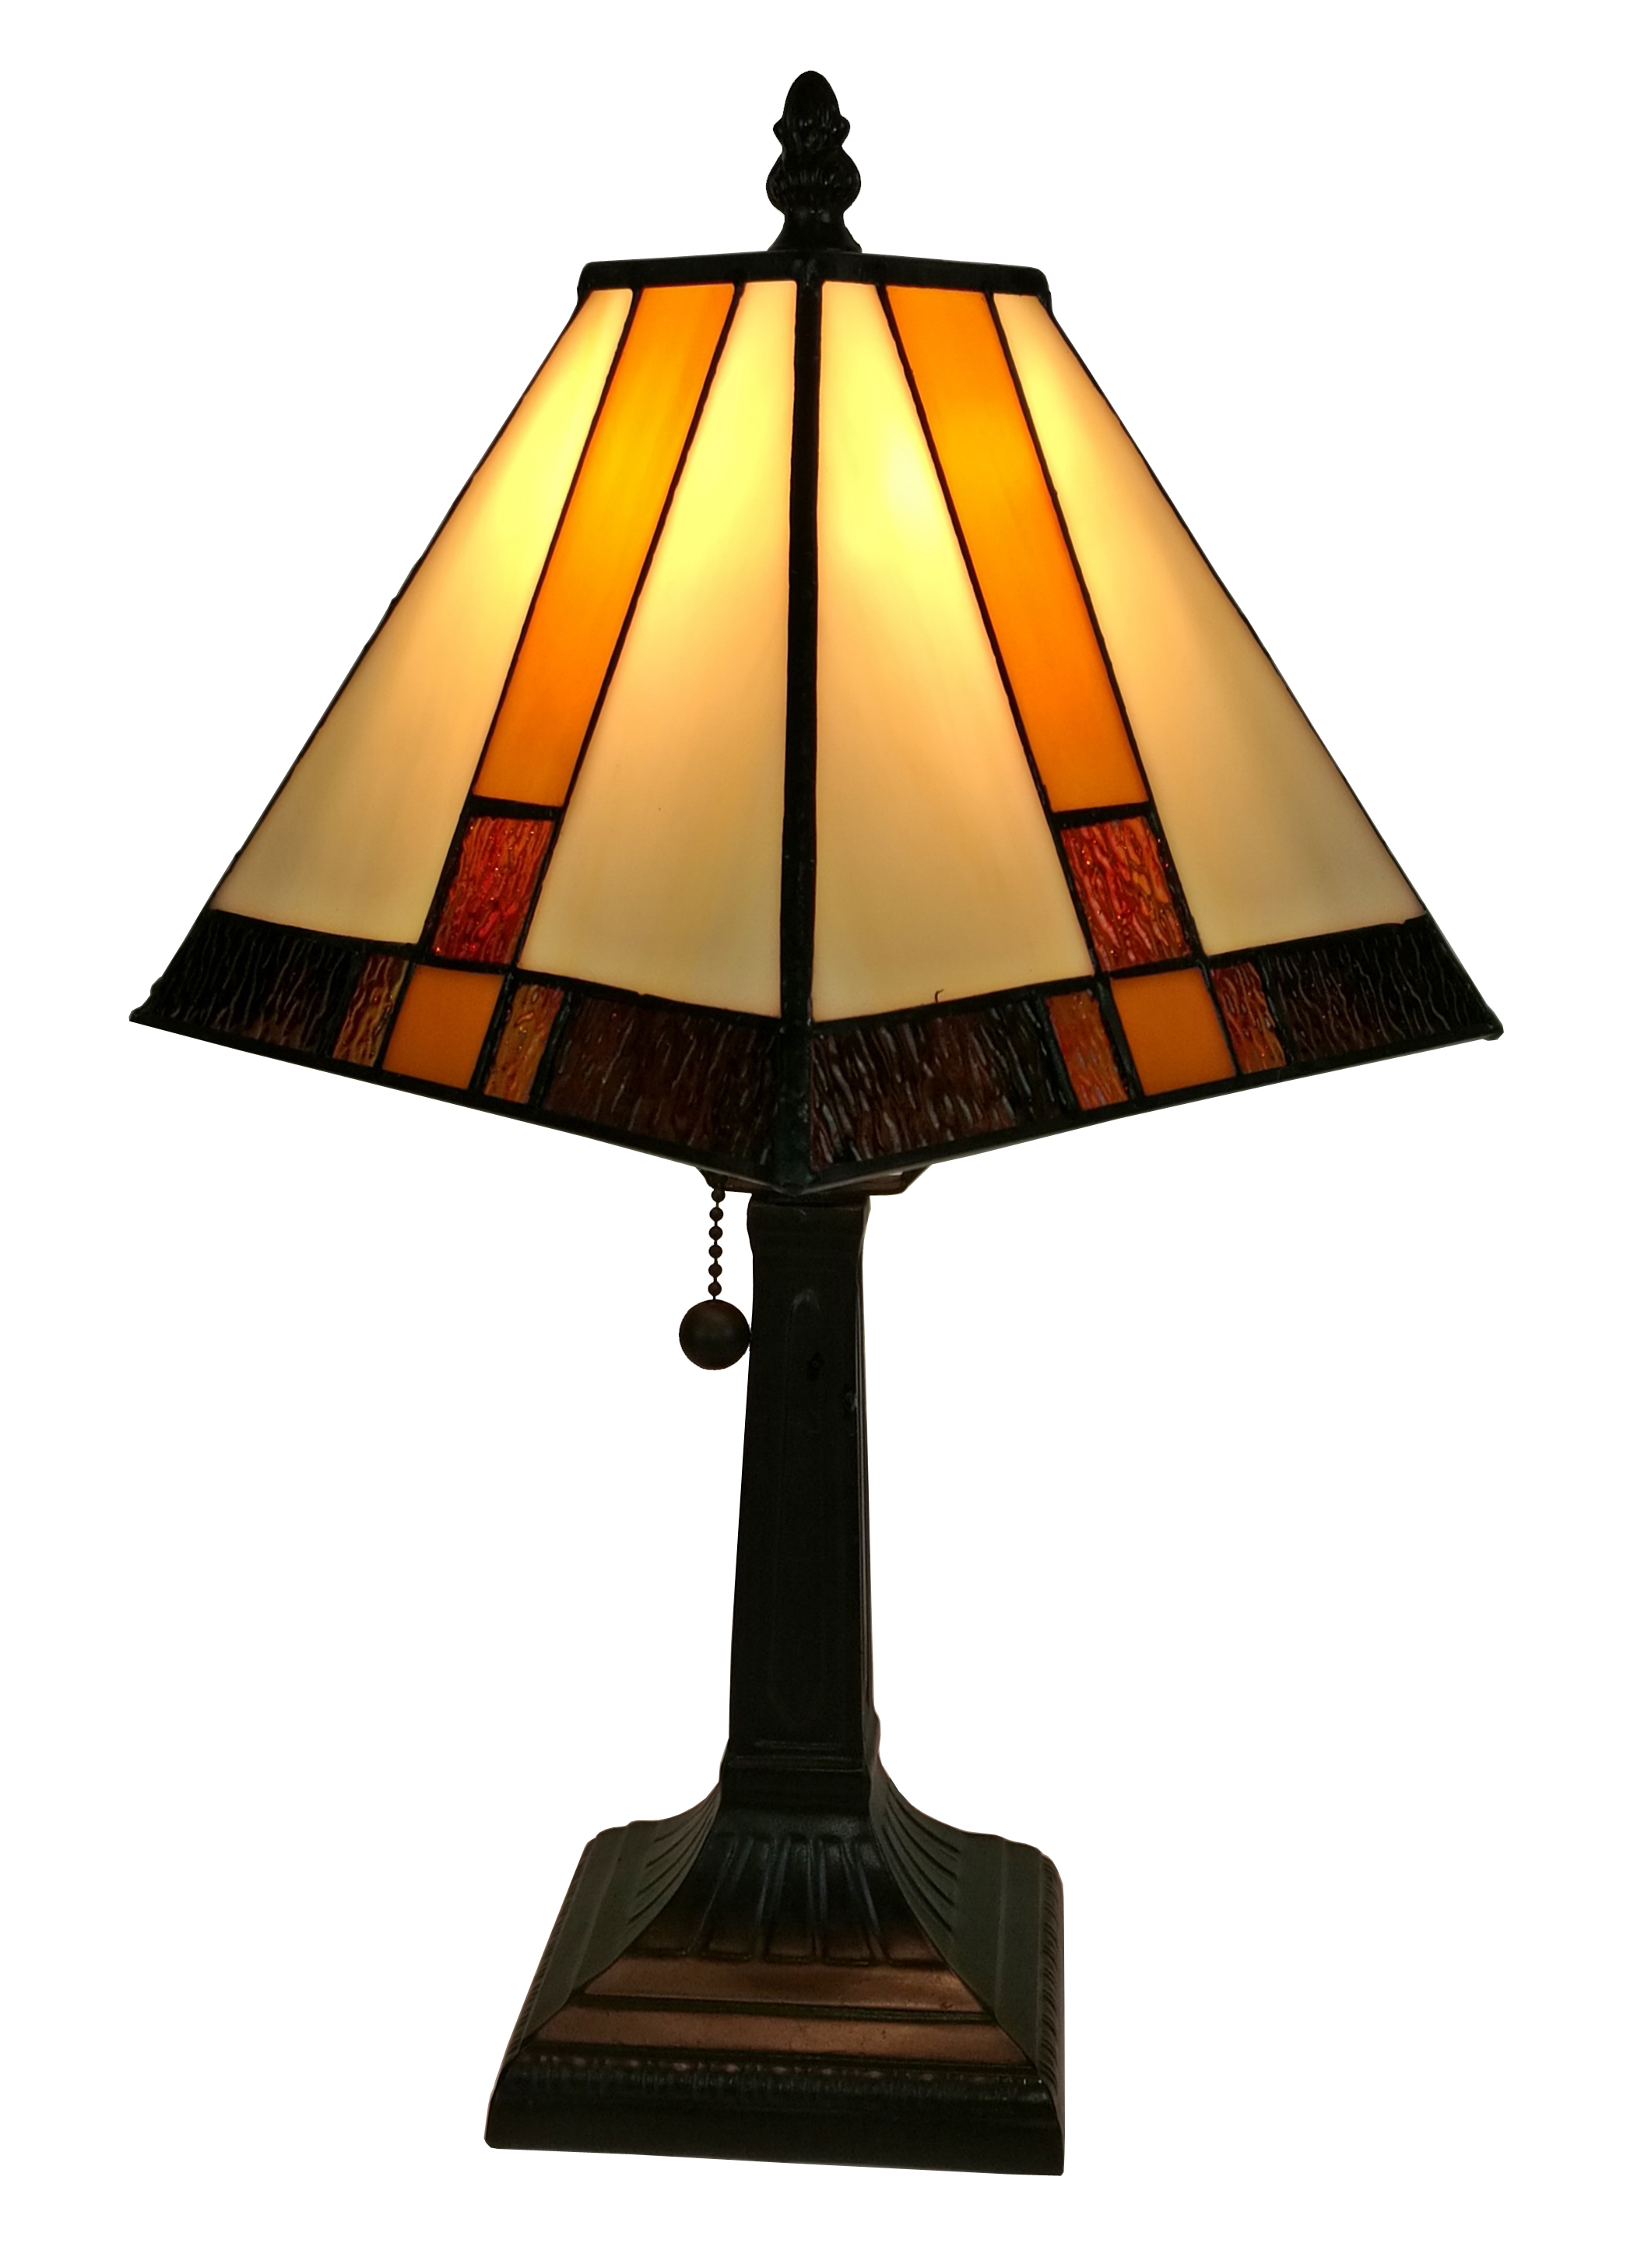 frank arts mission blue lloyd glass and wright shades floor crafts lamp style lamps stickley amazon table tiffany green